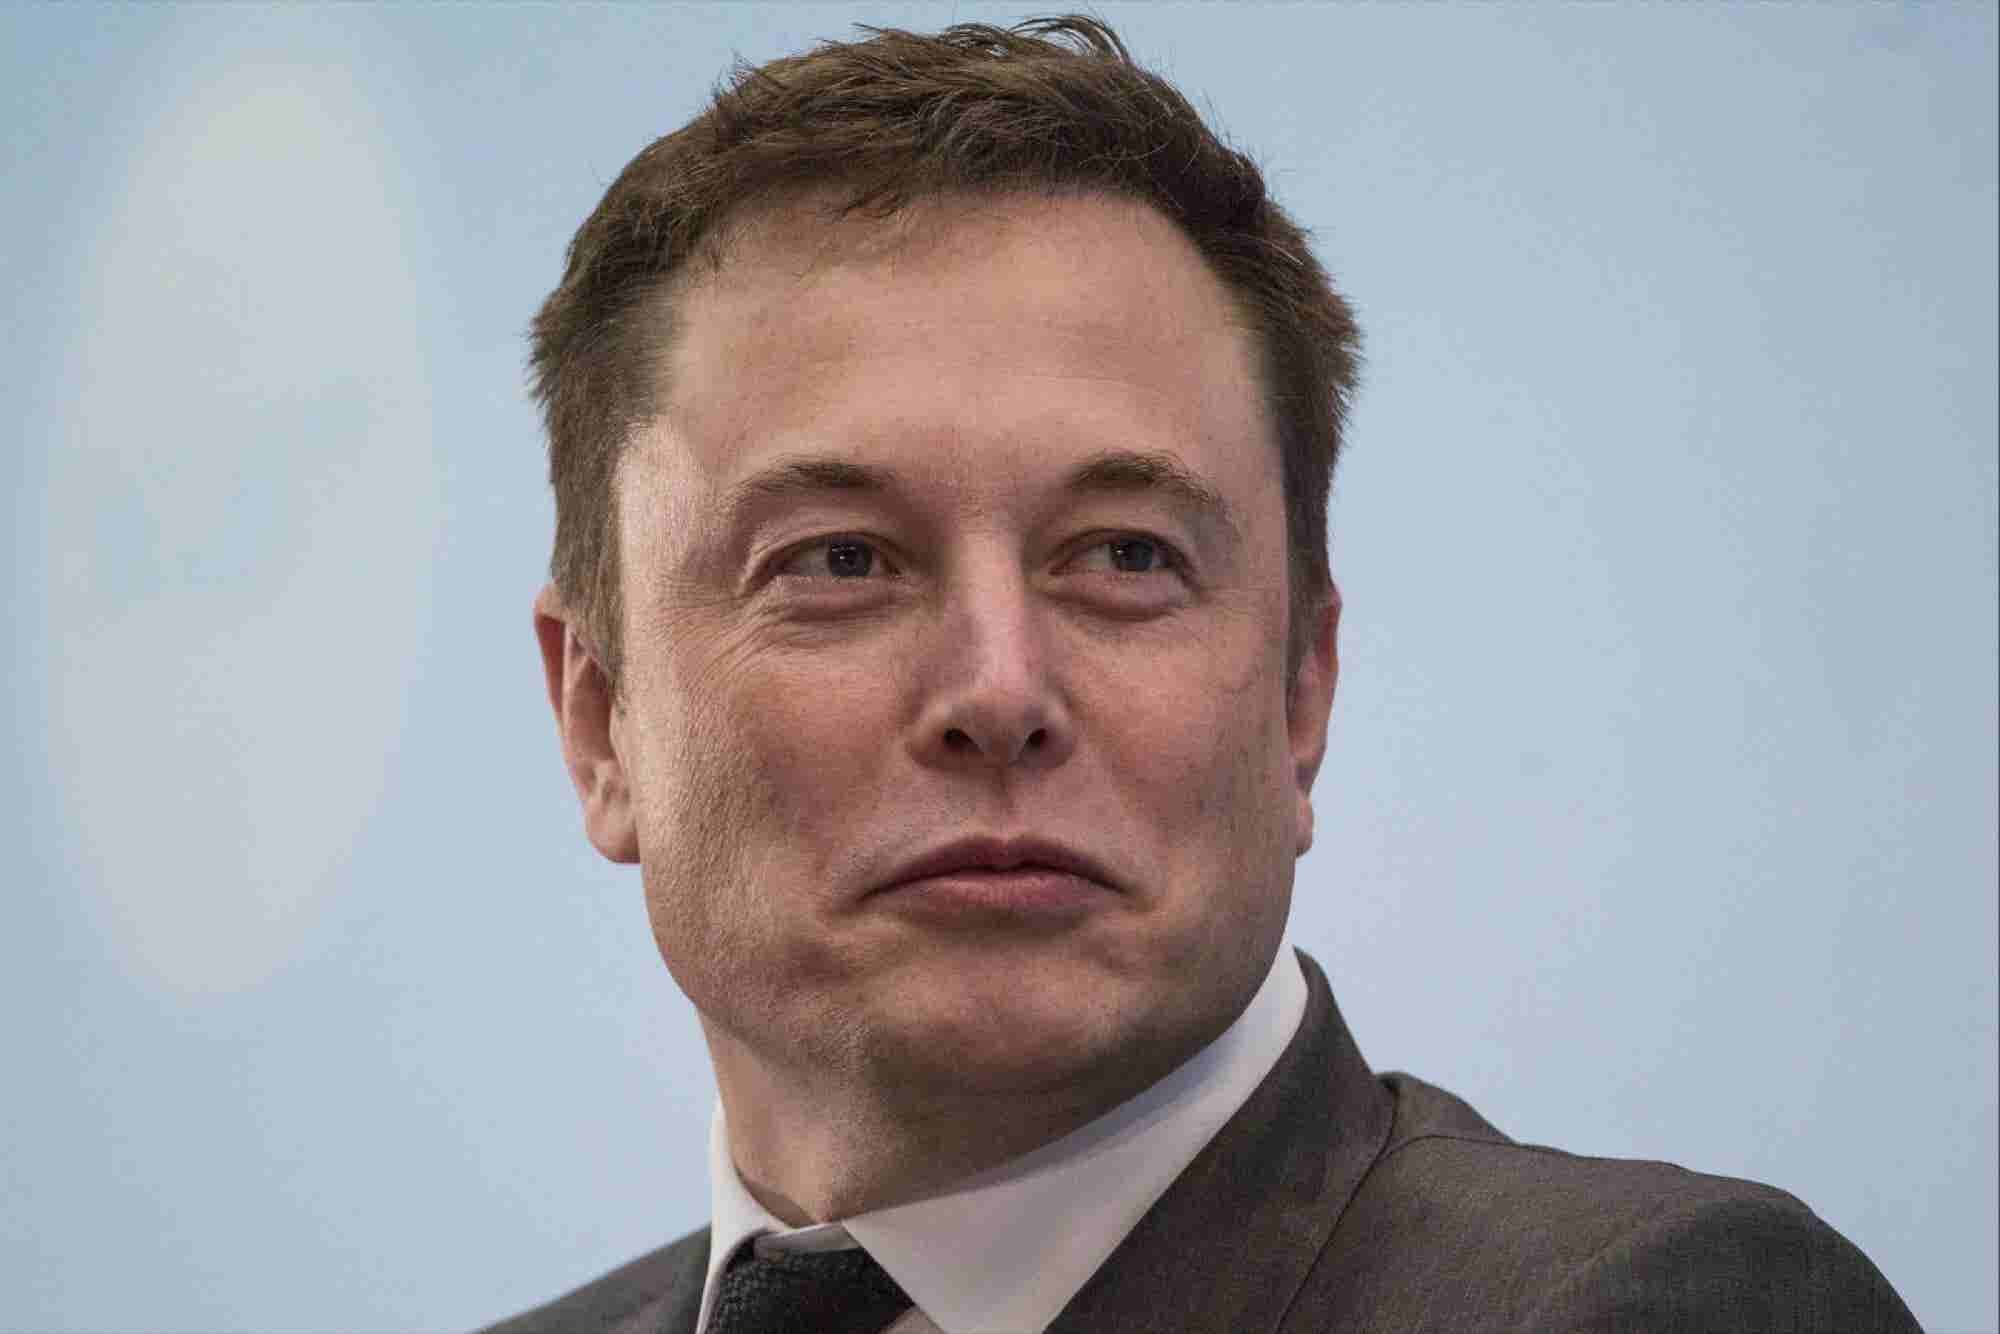 Why Did Elon Musk Just Visit the Pentagon? Oh, Right, to Talk Iron Man Suits. Maybe.